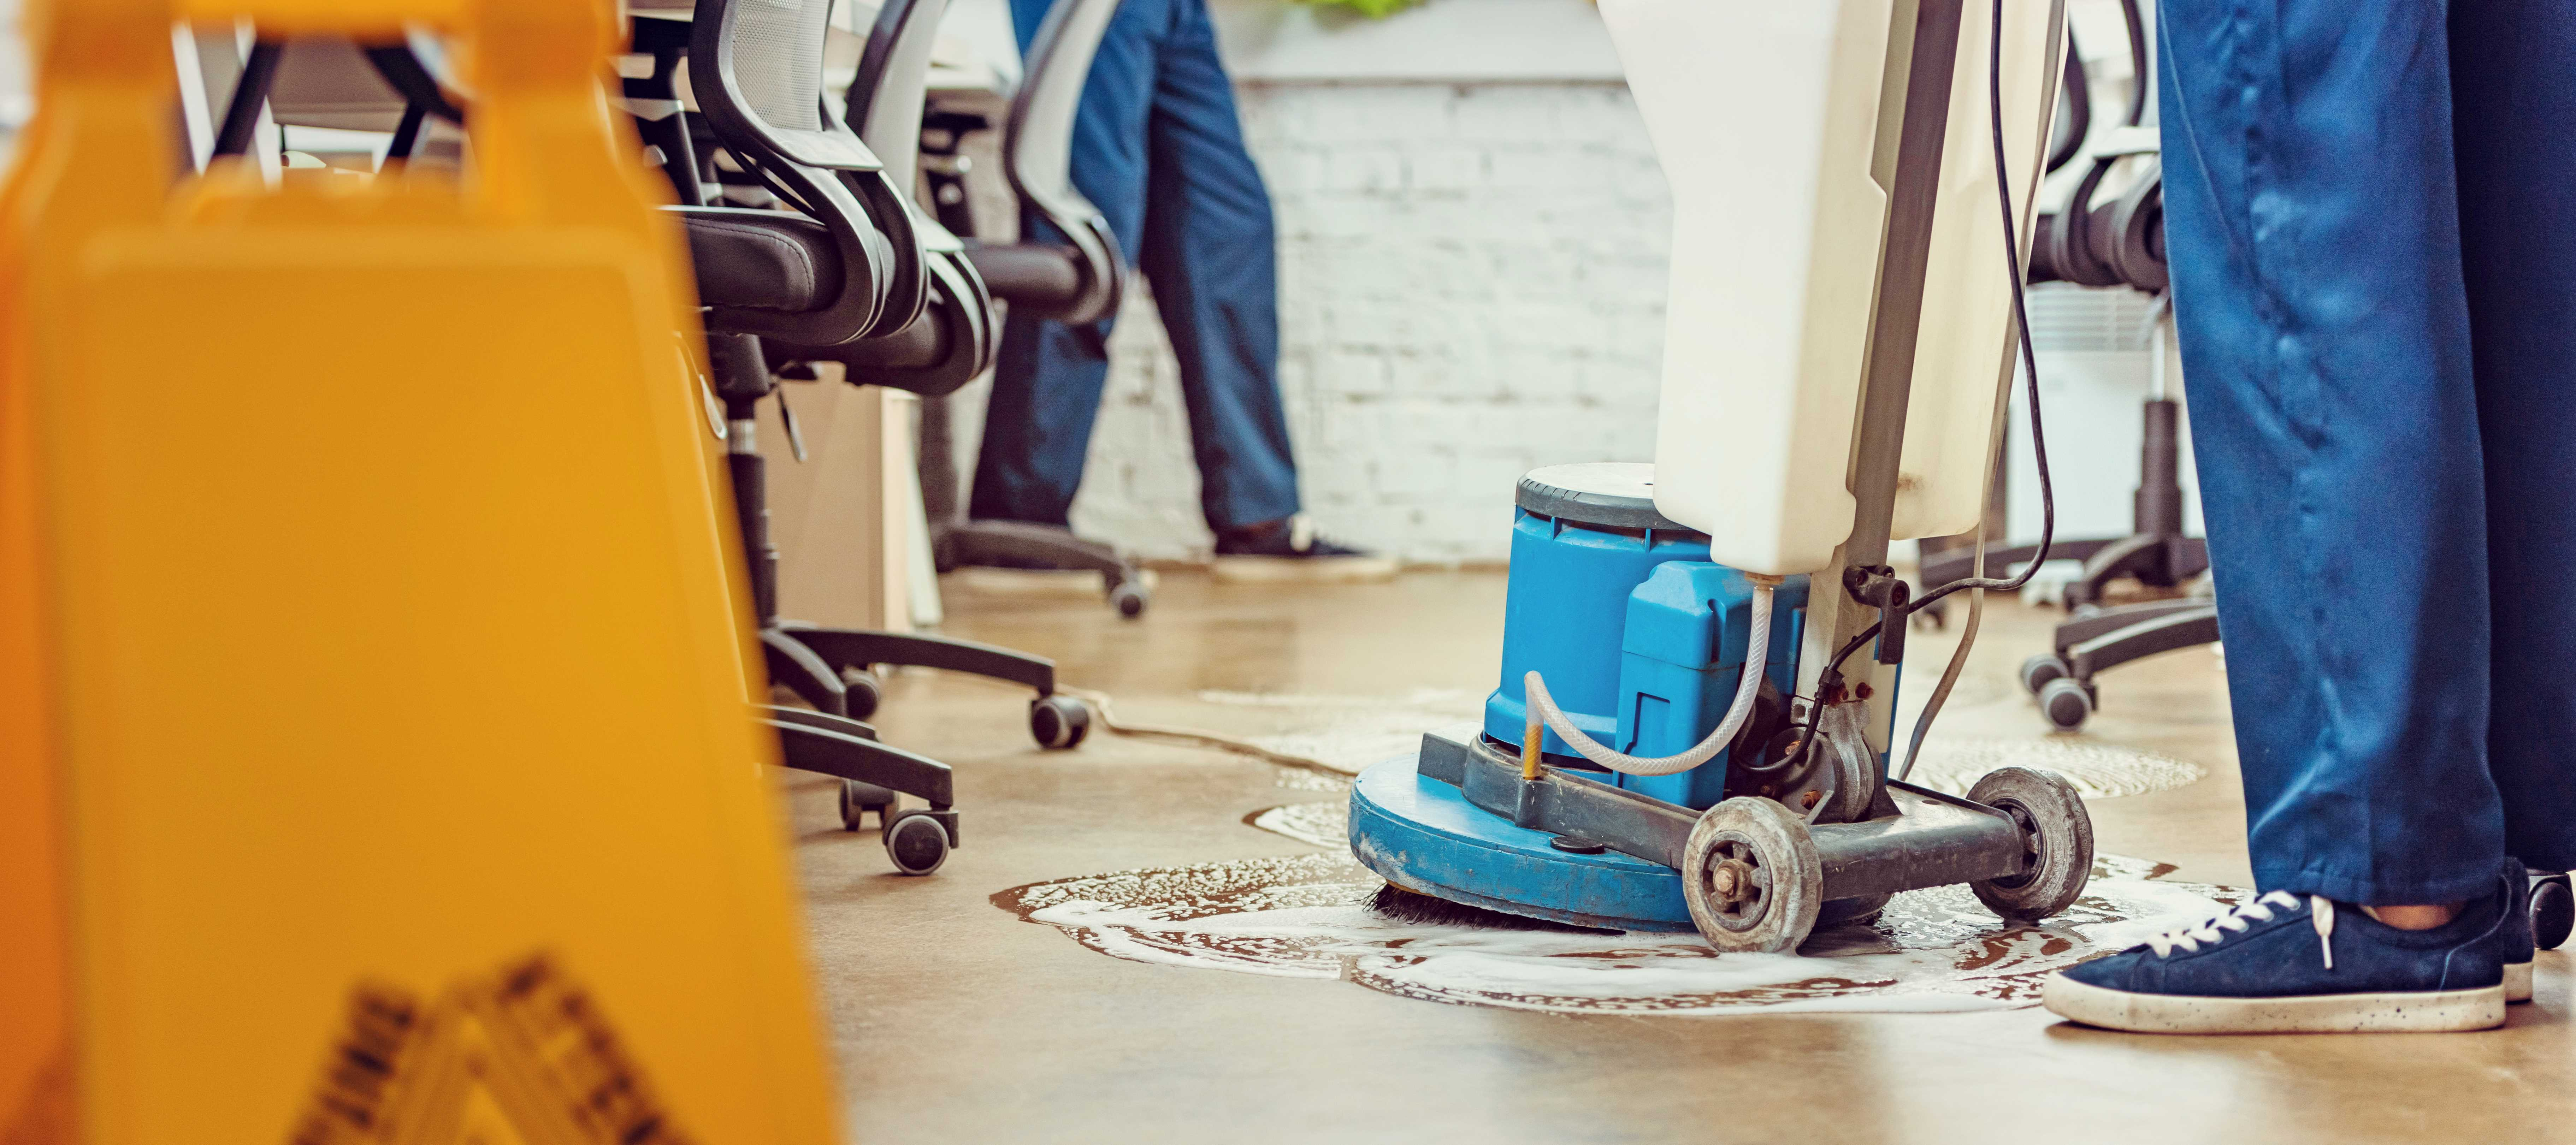 Tips For Hiring A Commercial Cleaning Service in Springfield Missouri